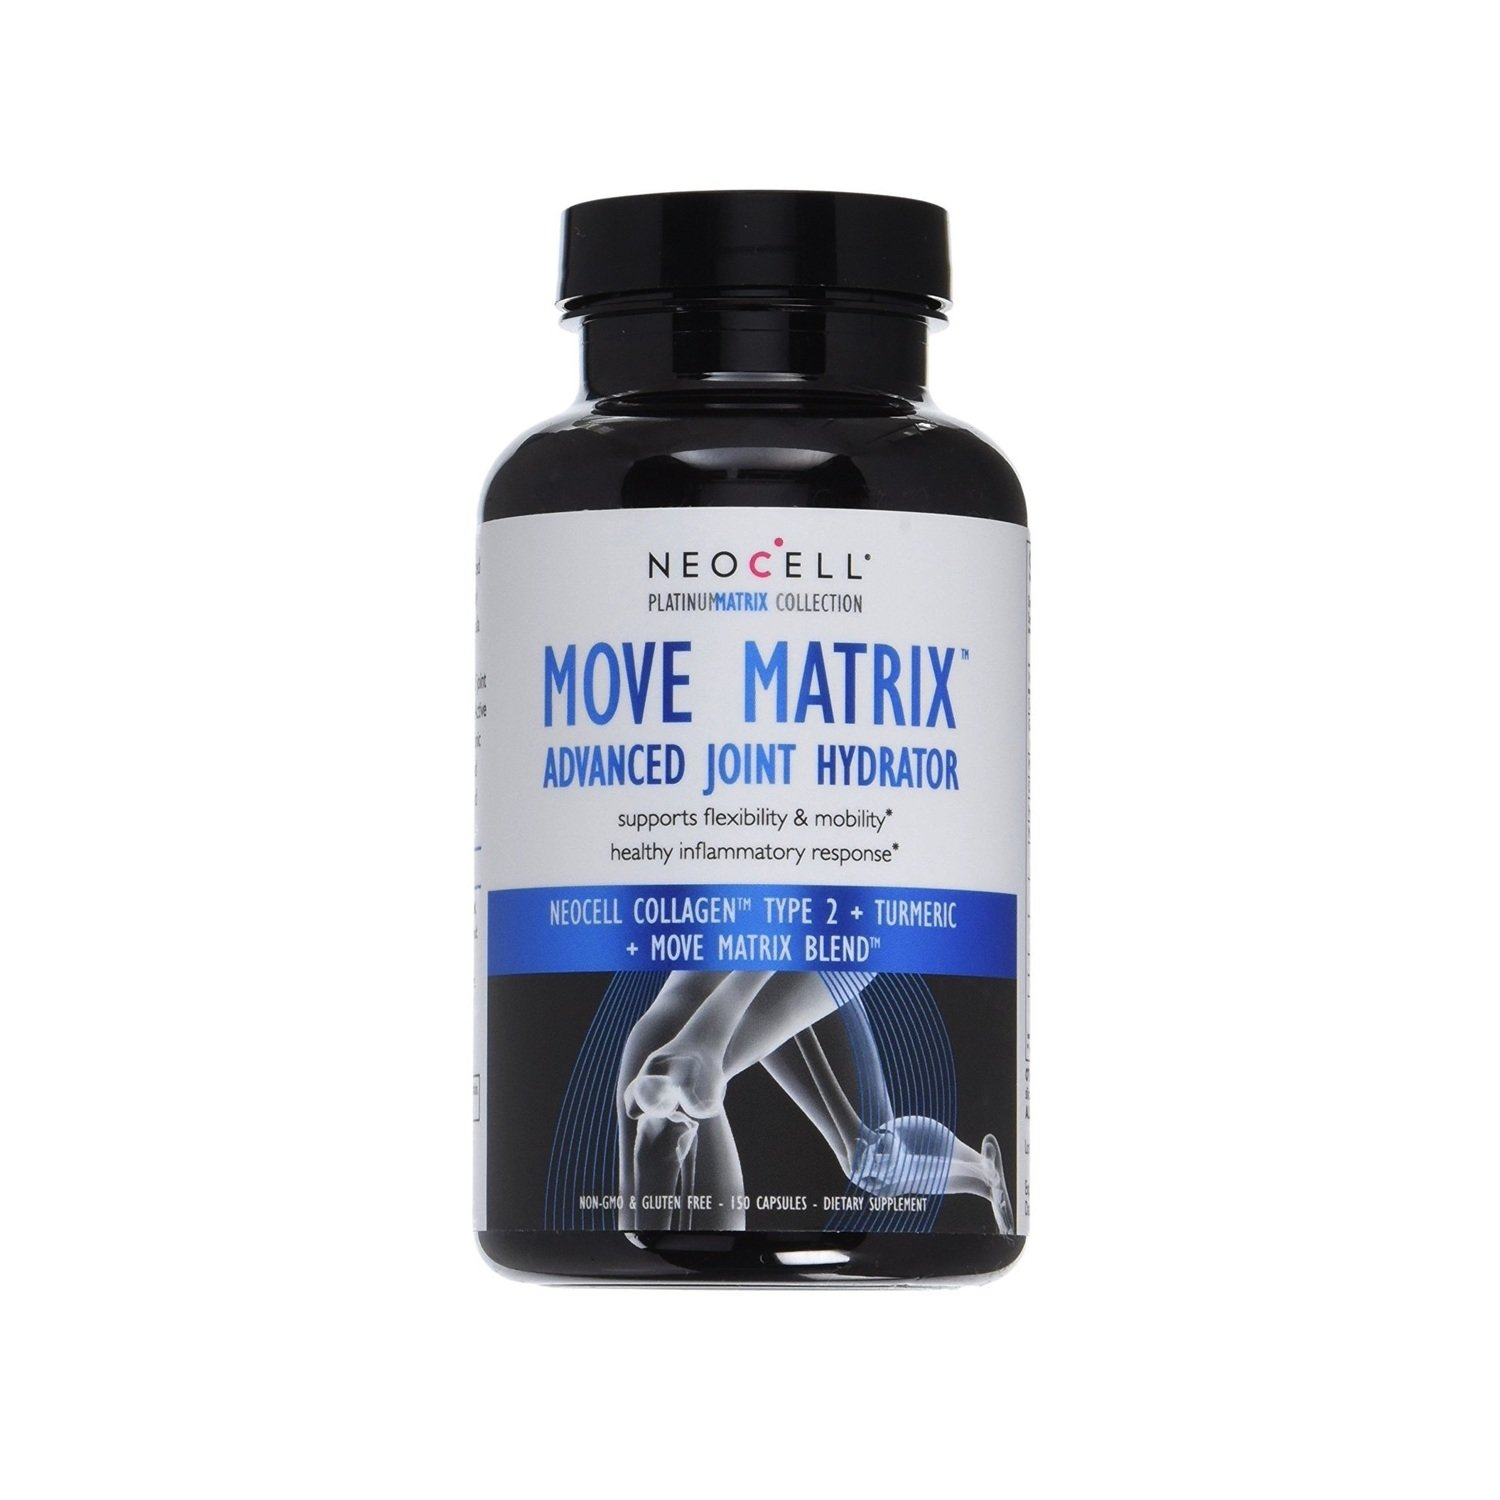 Neocell Joint Hydrator Move Matrix Advance Joint Hydrator 150 capsules